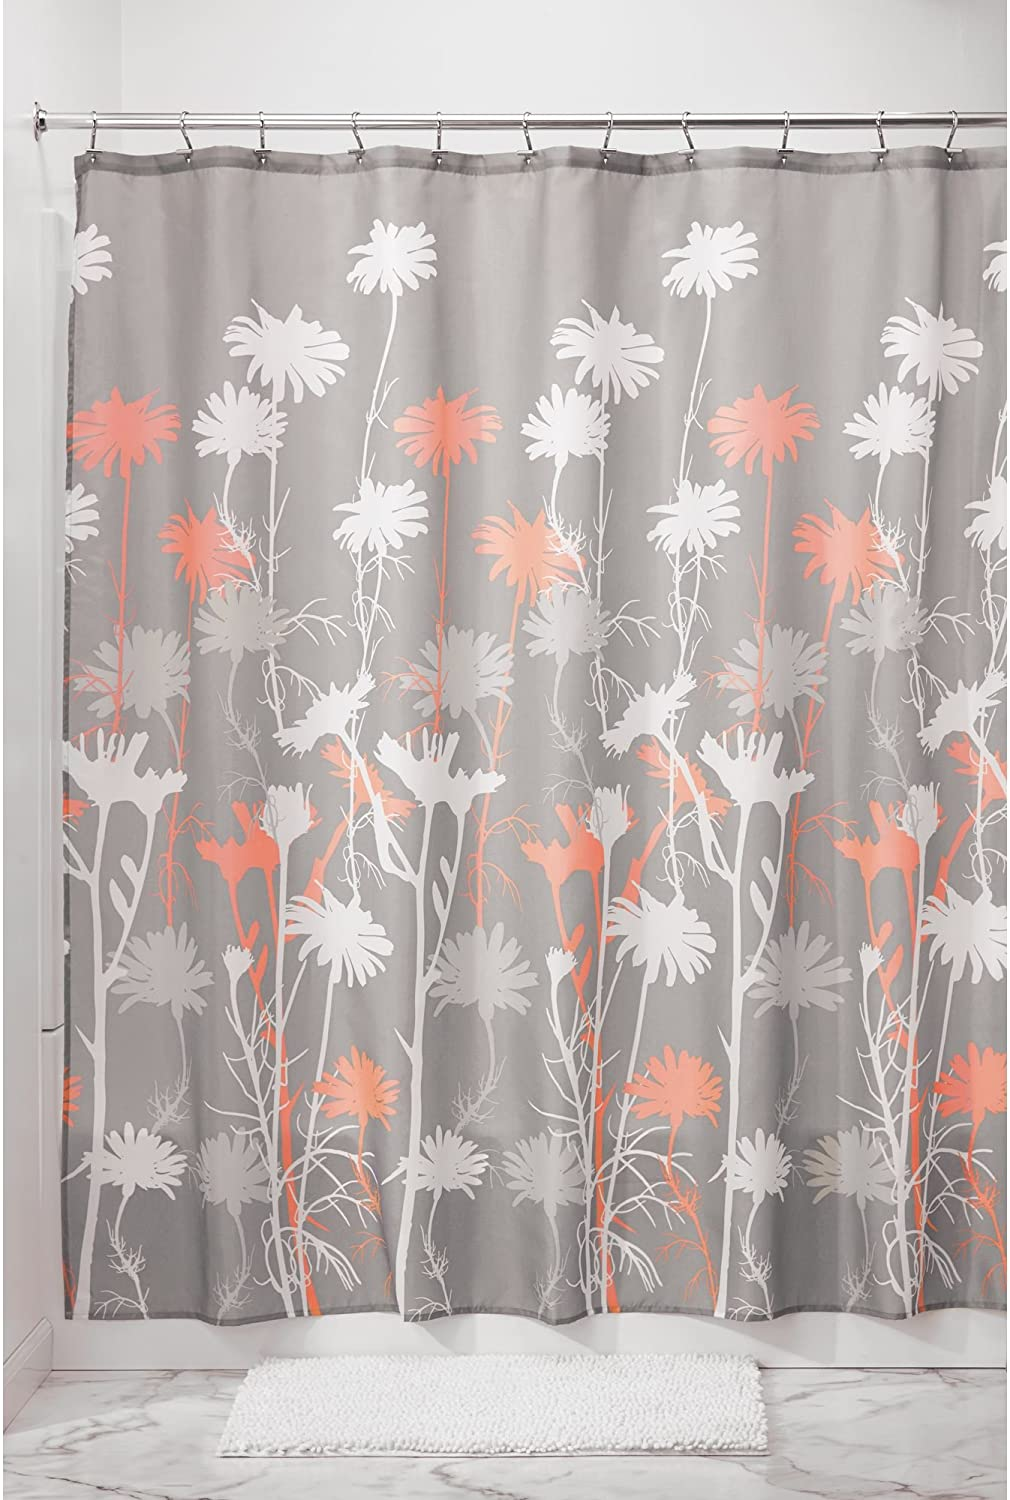 iDesign Fabric Daizy Shower Curtain for Master, Guest, Kids', College Dorm Bathroom, 72